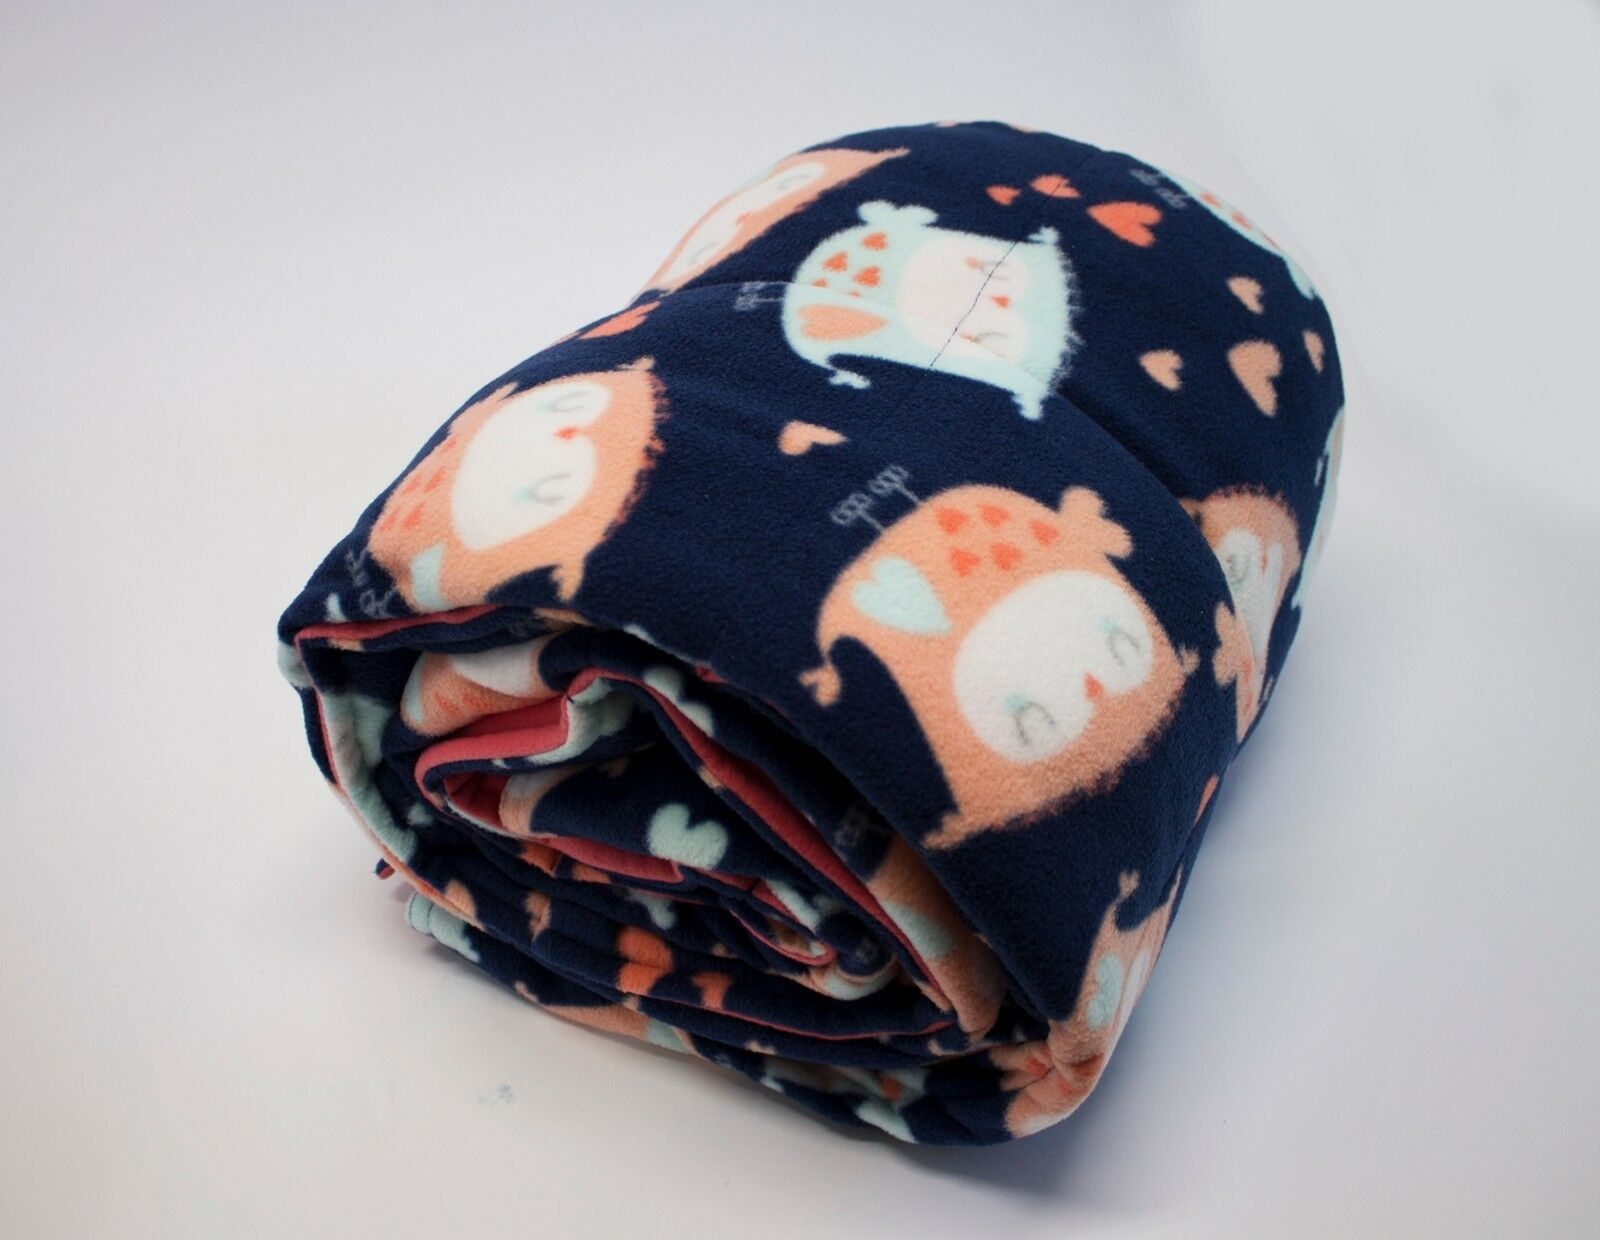 Weighted Blanket  Fleece Fabric - Helps to reduce insomnia,Anxiety, Sleep better